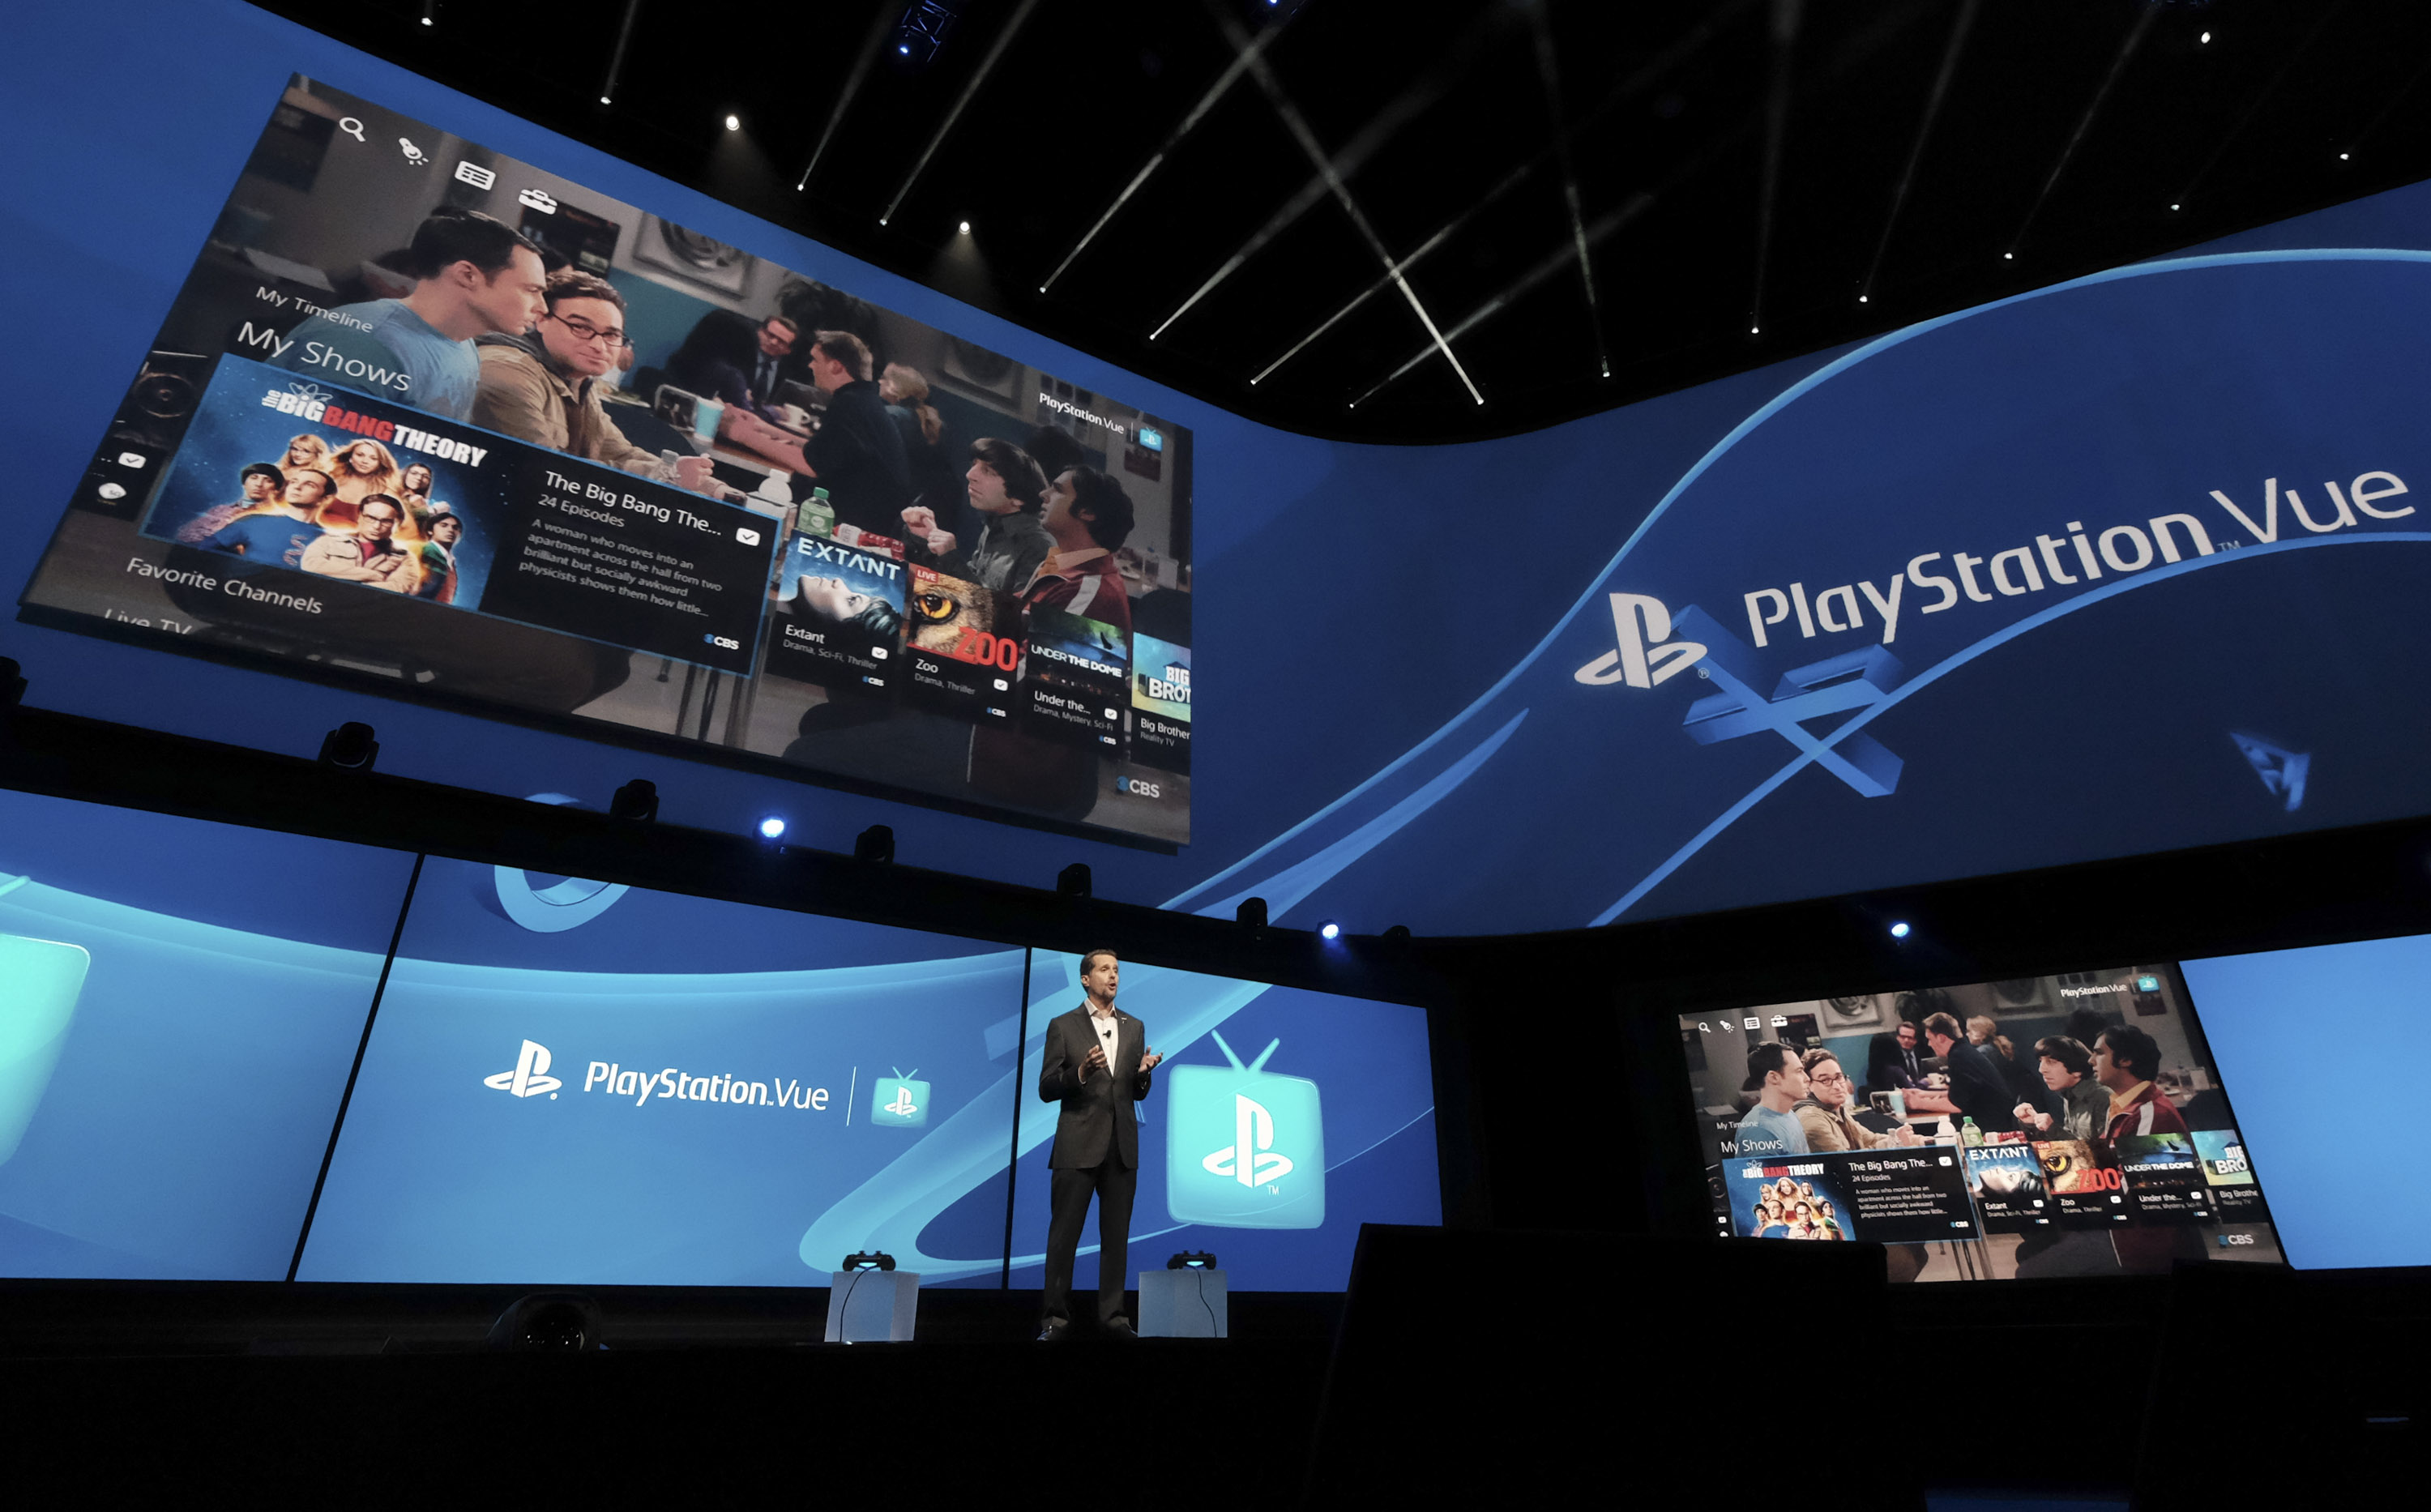 ndrew House, President and Global CEO of Sony Computer Entertainment Inc., announces the launch of PlayStation Vue in the Greater Los Angeles and San Francisco Bay Area TV markets, as well as a-la-carte offerings nationwide at PlayStation's E3 2015 Press Conference on Monday June 15, 2015 in Los Angeles, California.